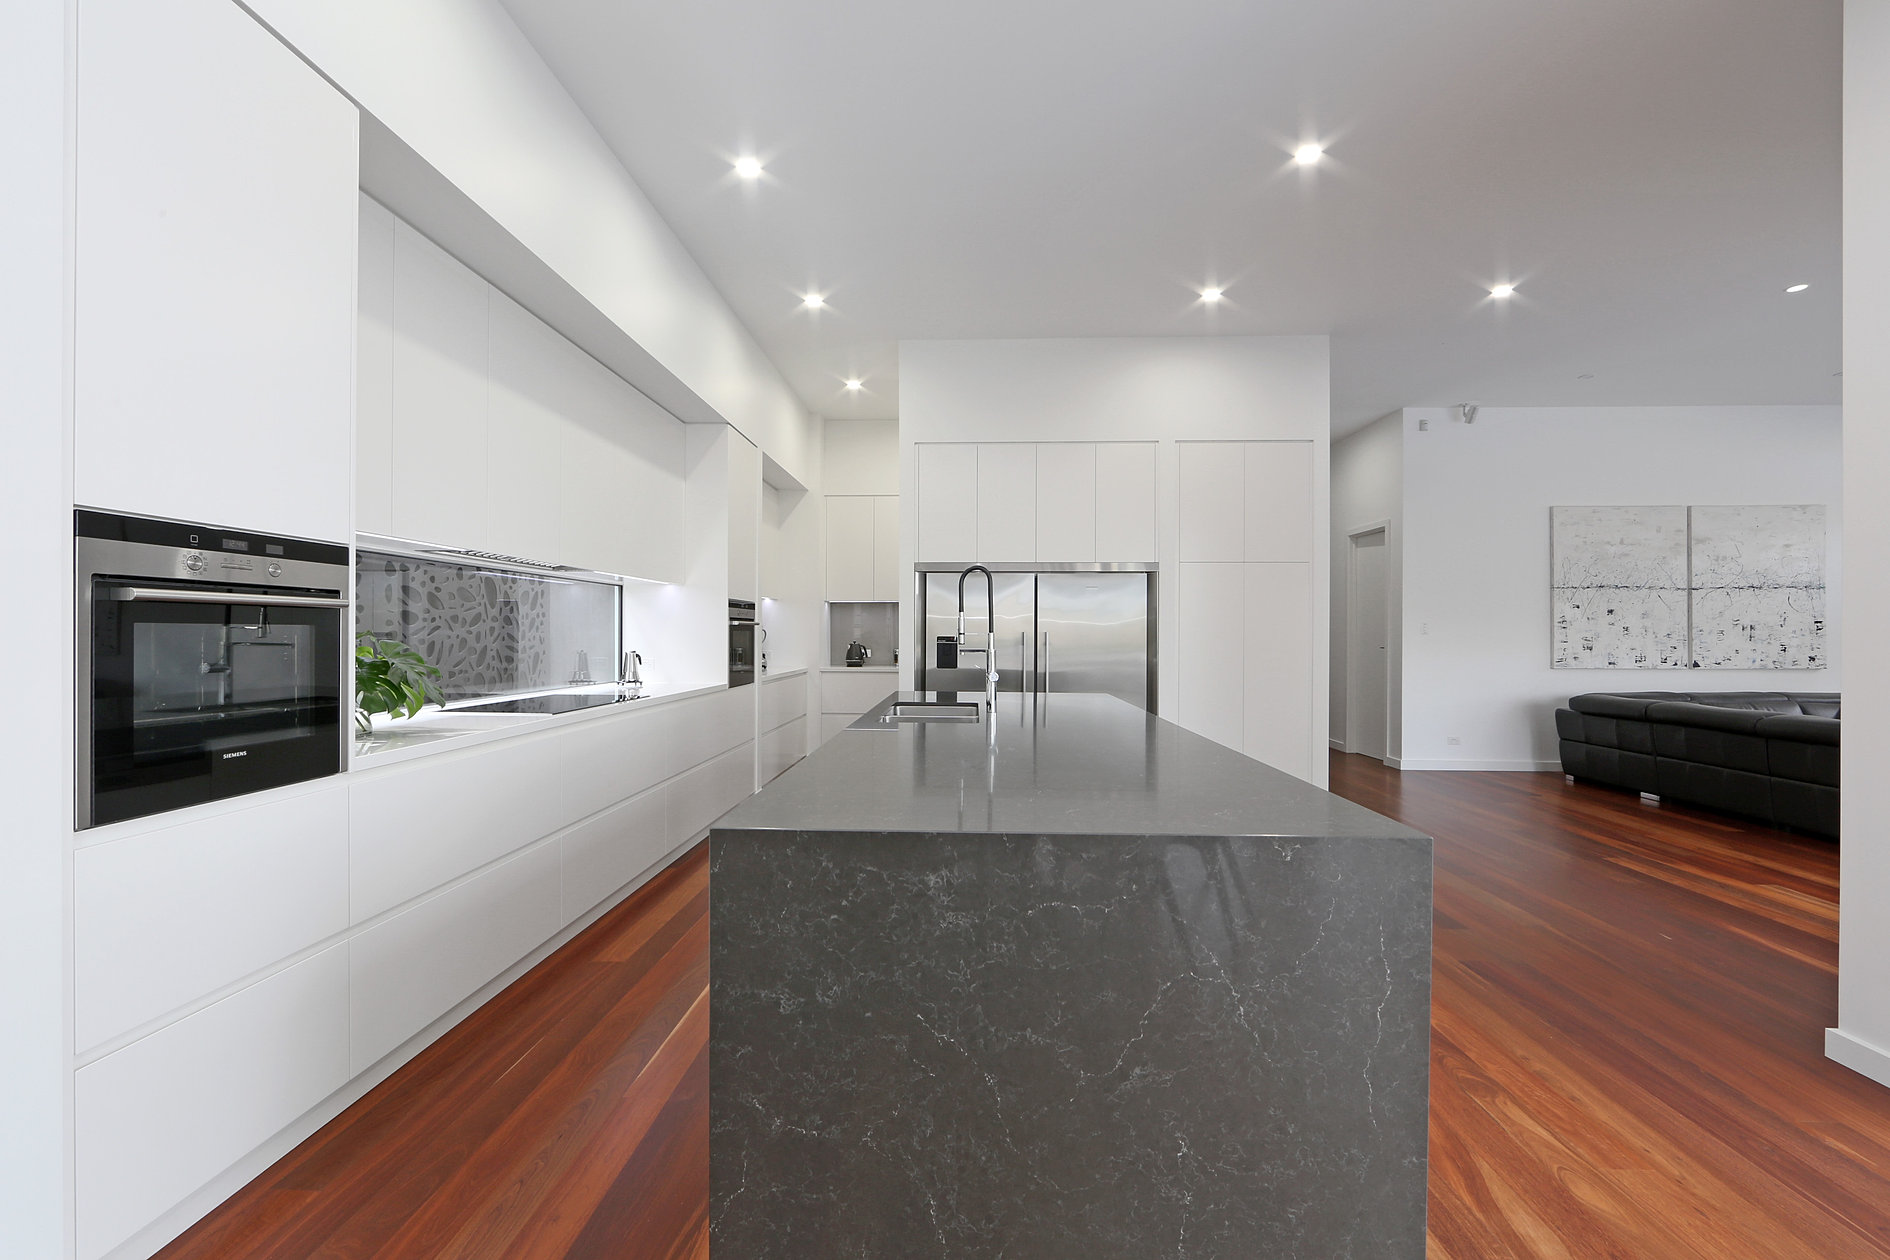 exellent kitchen design melbourne renovation brisbane